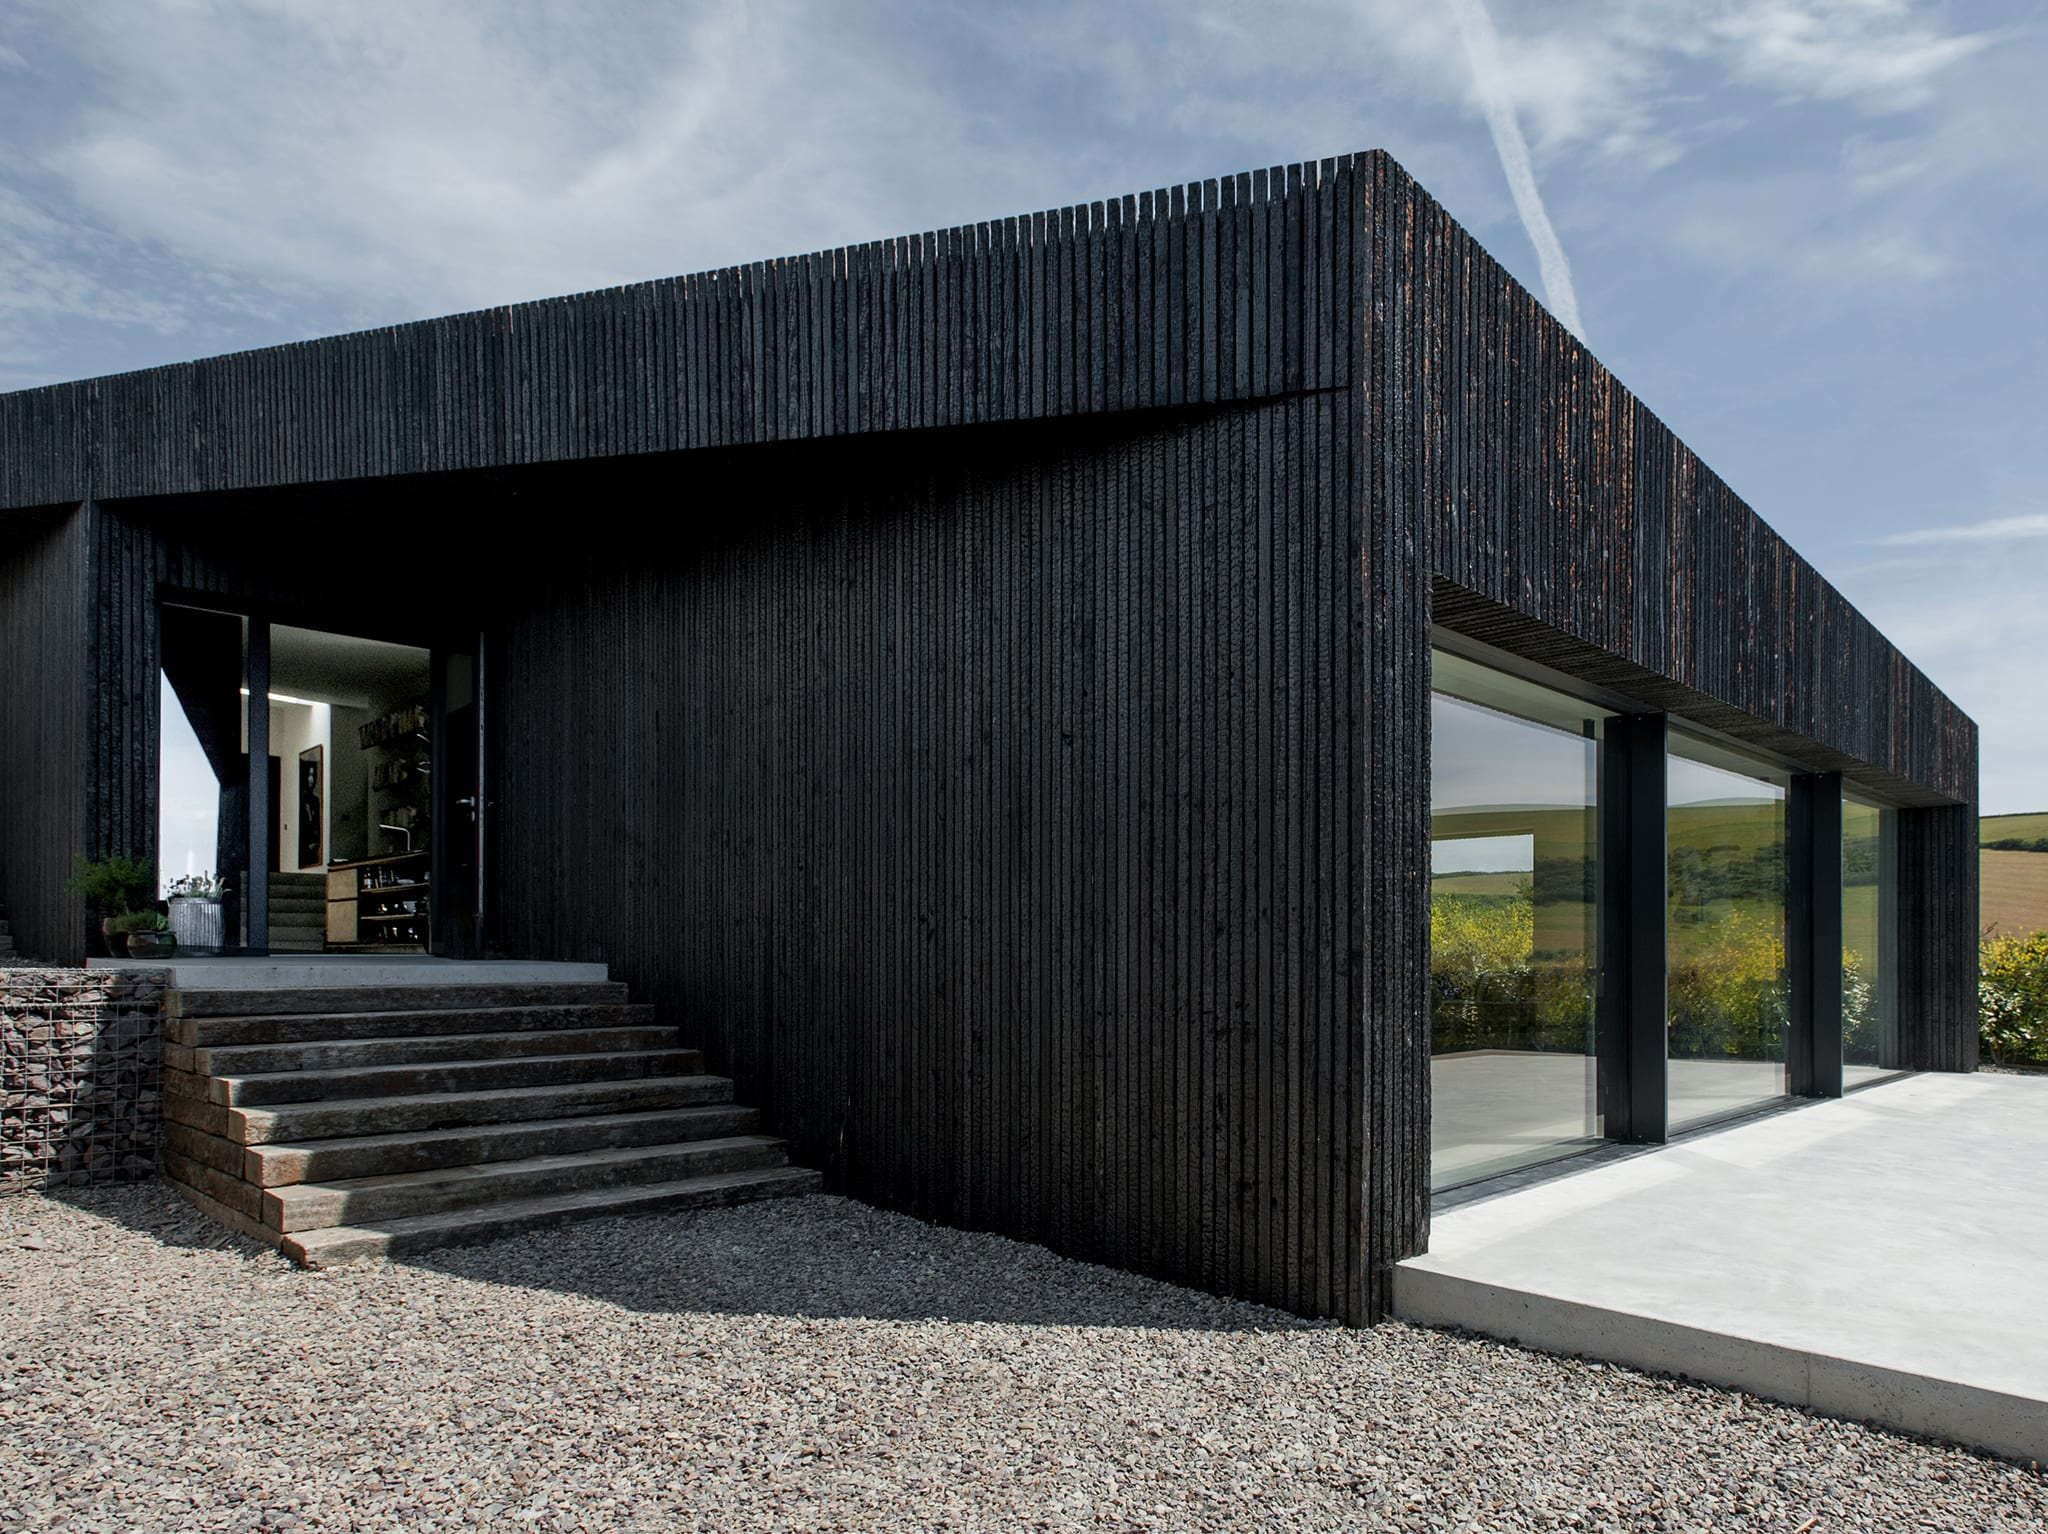 Devon_Woolacombe Architecture_Studio 1 Architects (8)